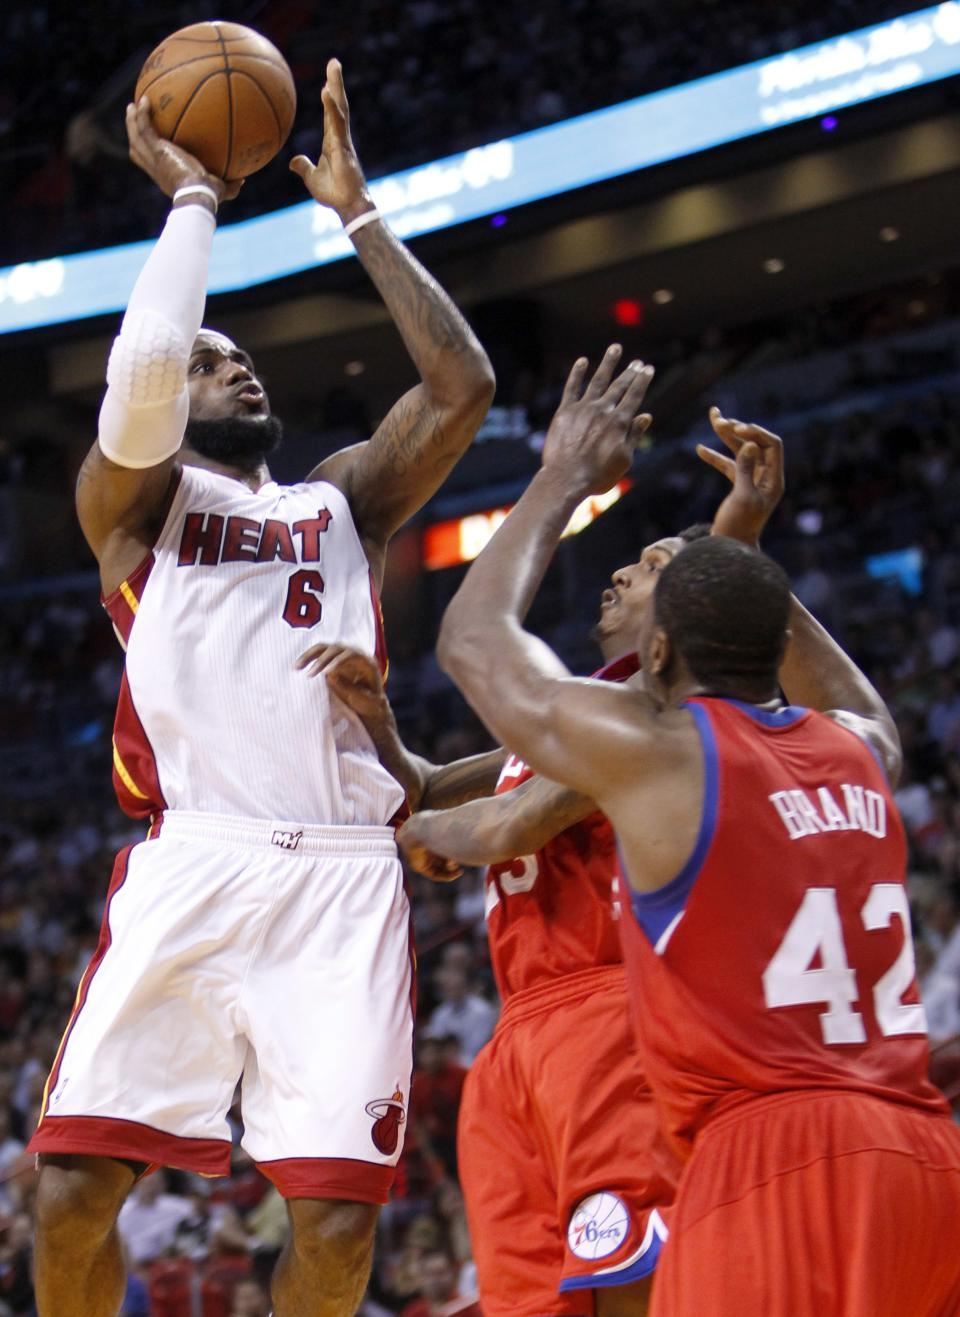 Miami Heat forward LeBron James (6) goes up for a shot against Philadelphia 76ers guard Lou Williams, center, and Philadelphia 76ers forward Elton Brand (42) during the first half of an NBA basketball game, Tuesday, April 3, 2012 in Miami. (AP Photo/Wilfredo Lee)